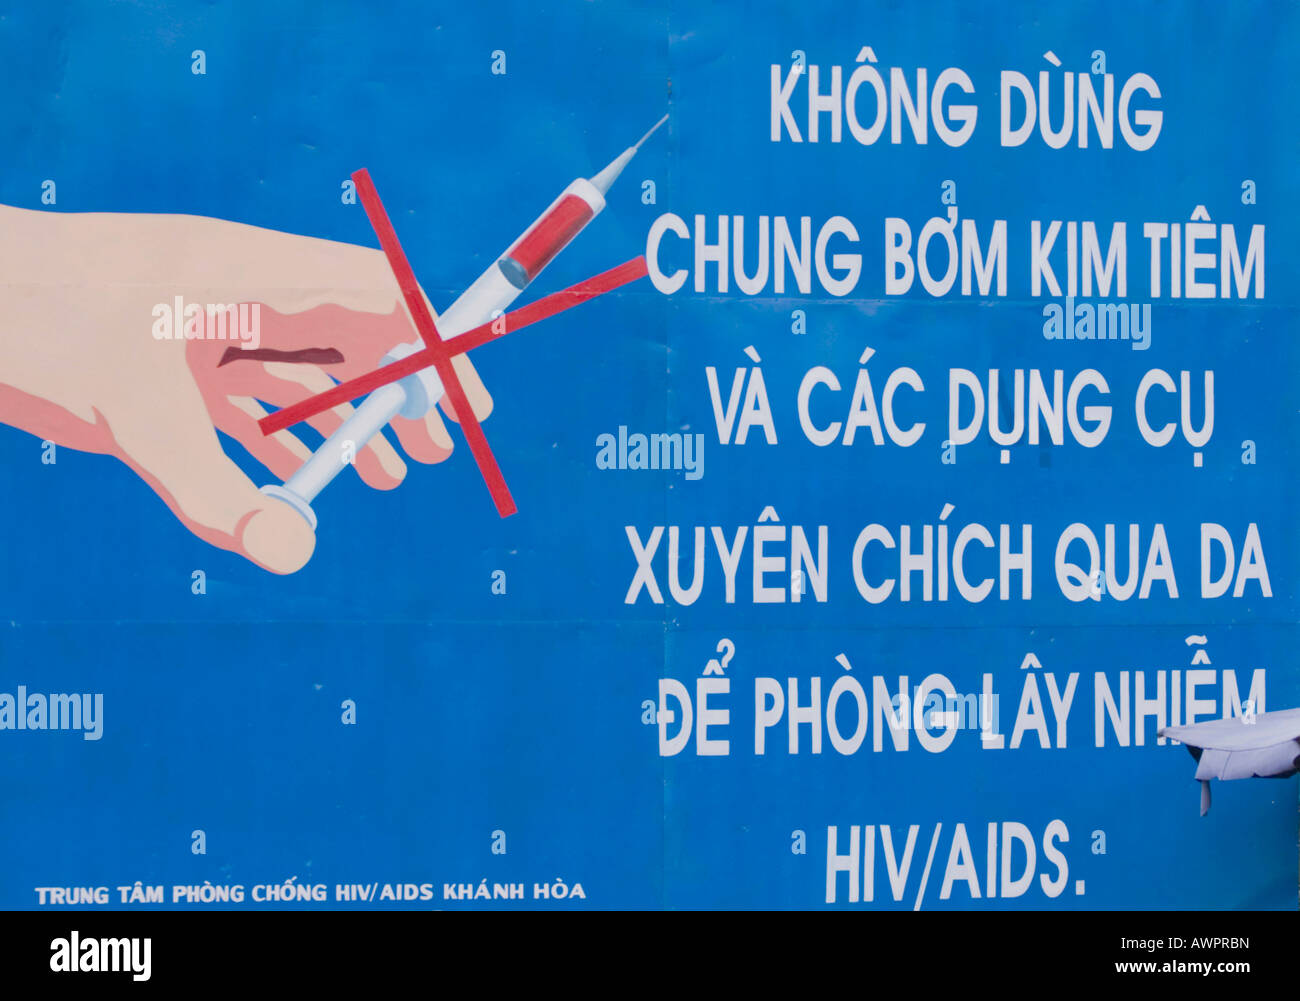 Information poster on Aids, HIV, Vietnam, Asien - Stock Image